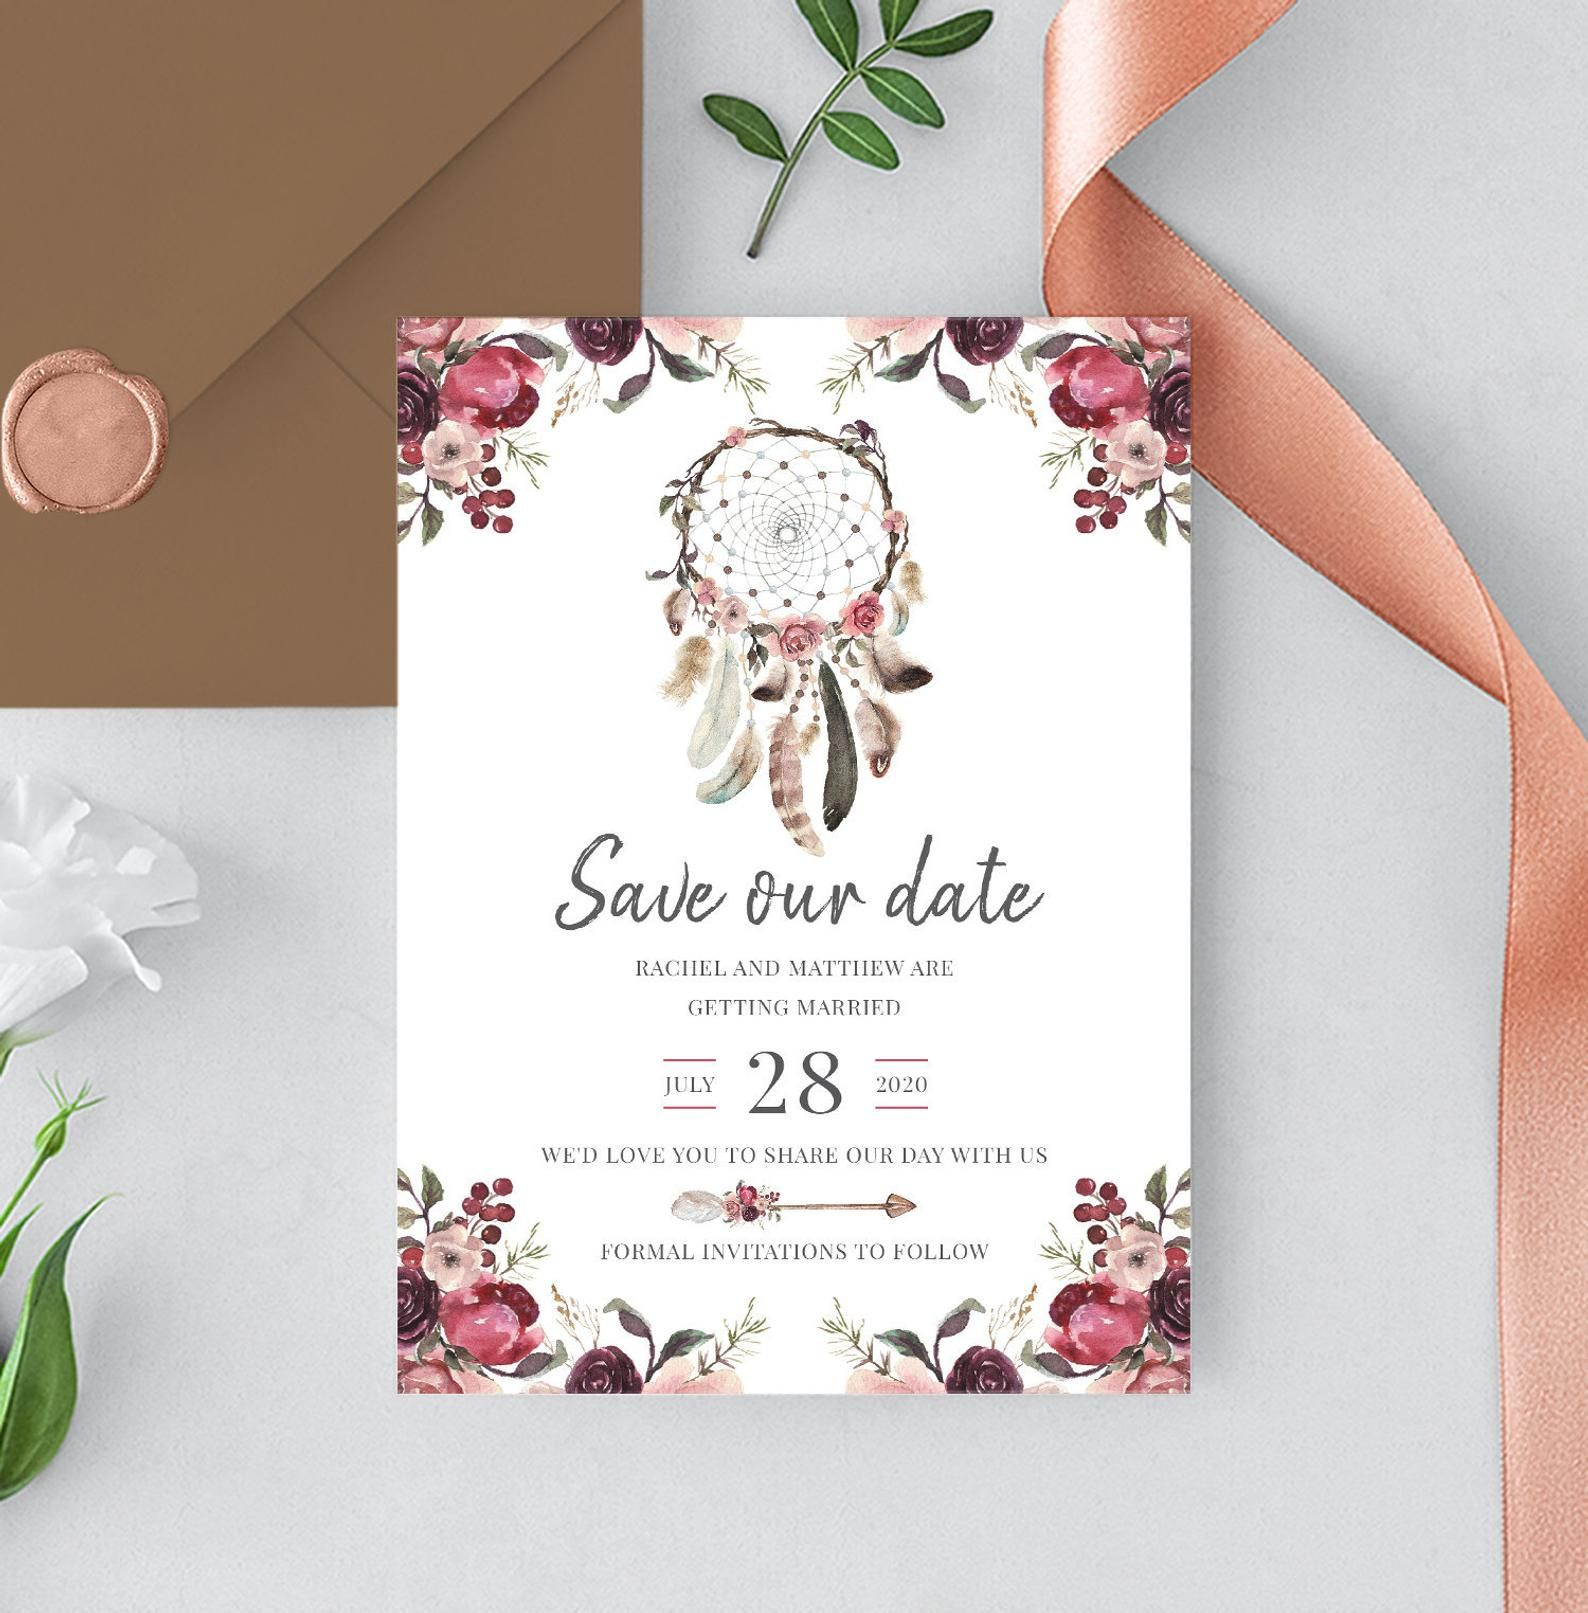 Boho Floral Save the Date Card Feathers invitation Rustic Save the Date Printable Floral Boho Save the Date Bohemian Card